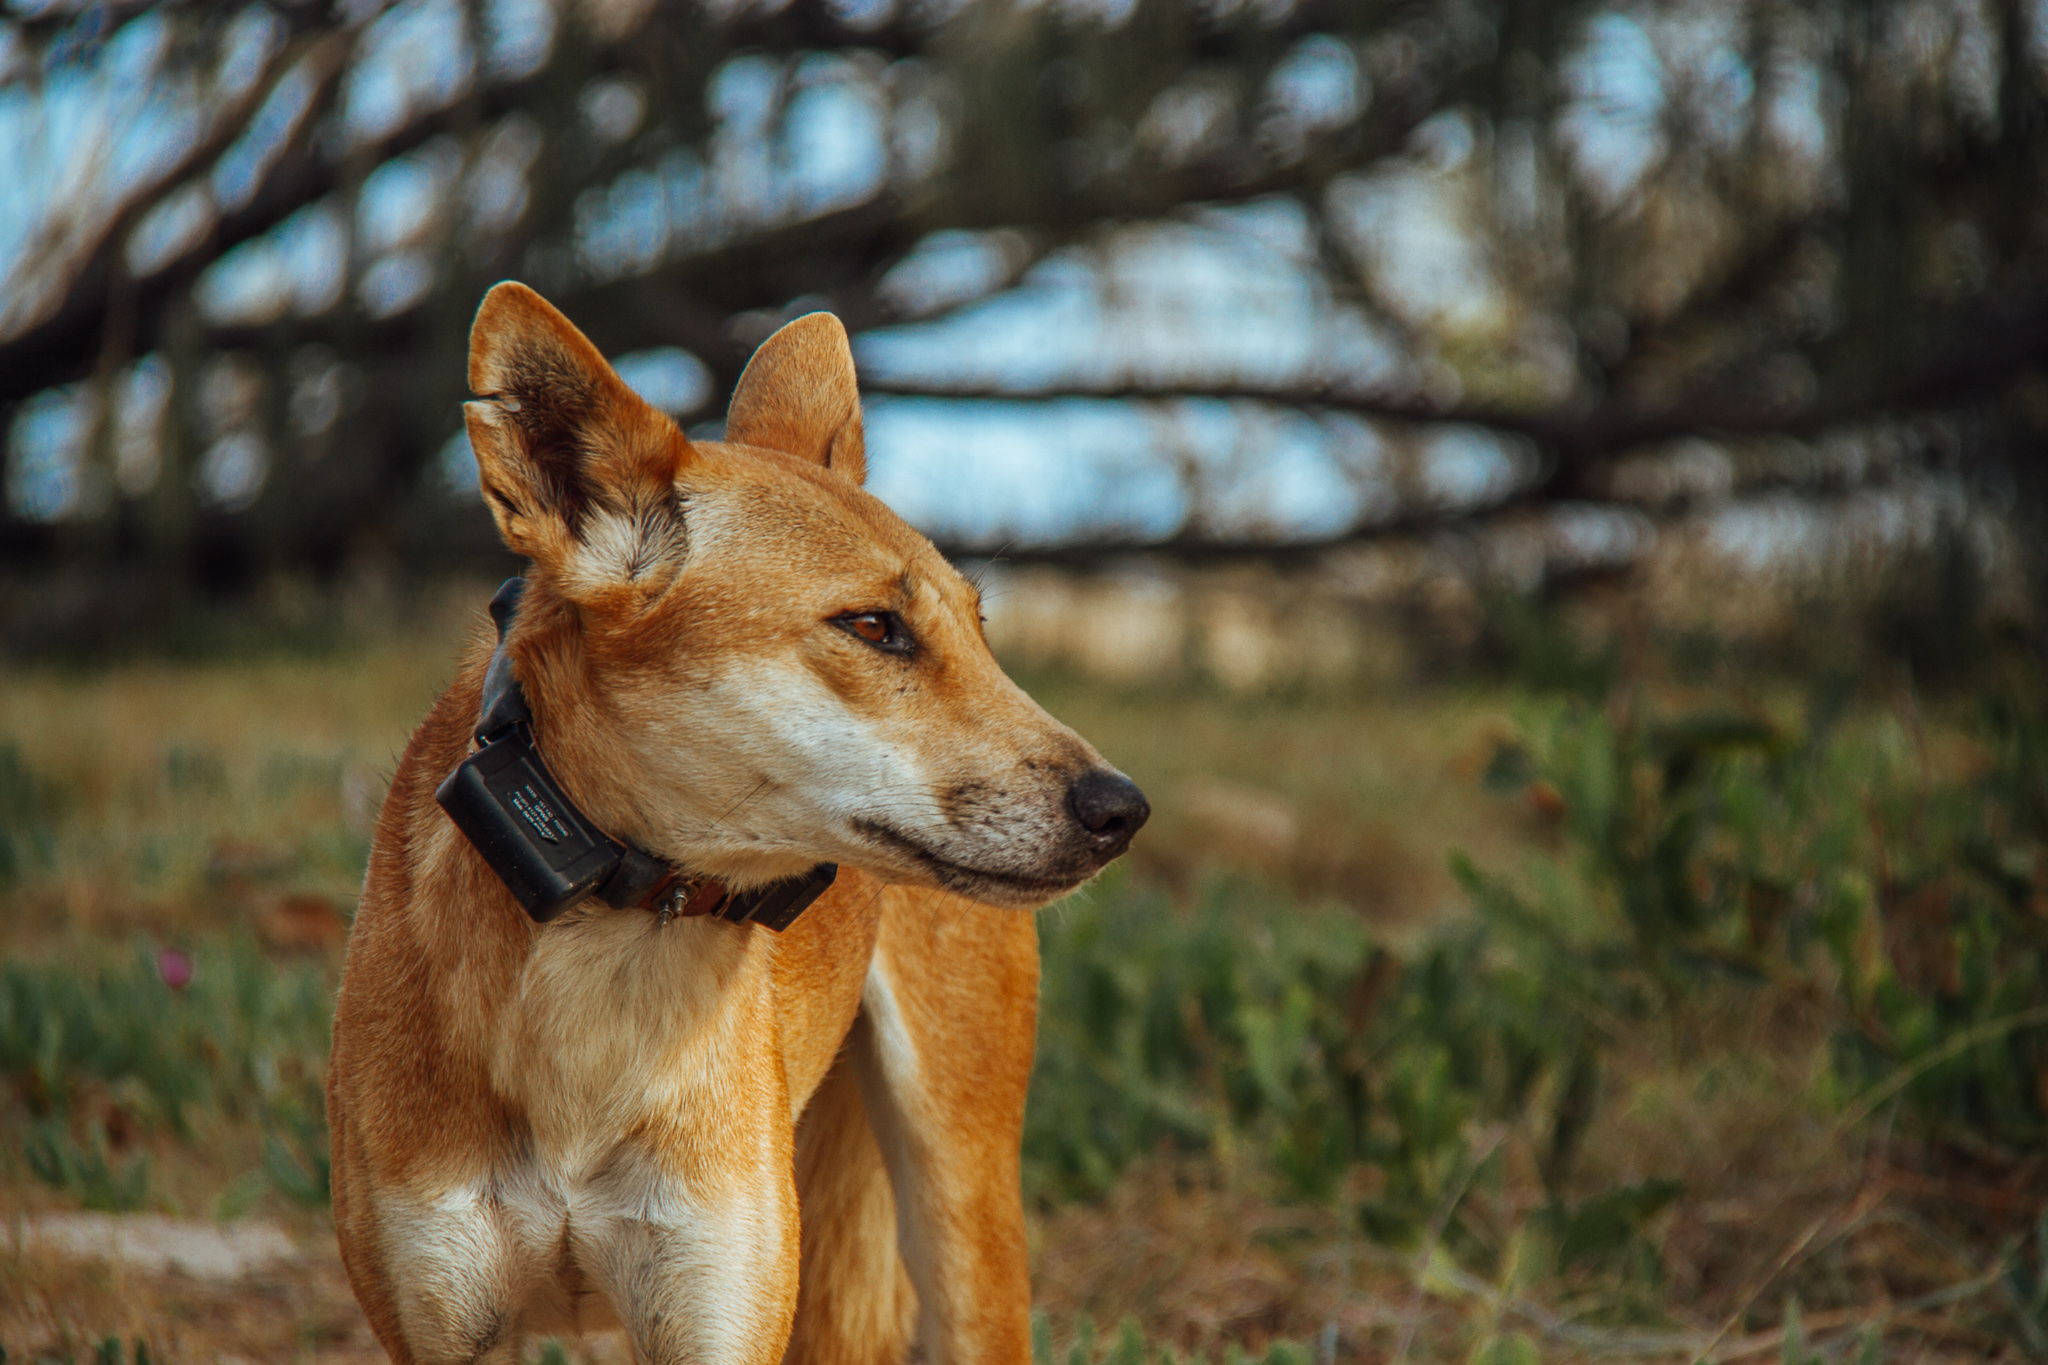 Dingo with Tracking Collar Fraser Island Queensland Australia